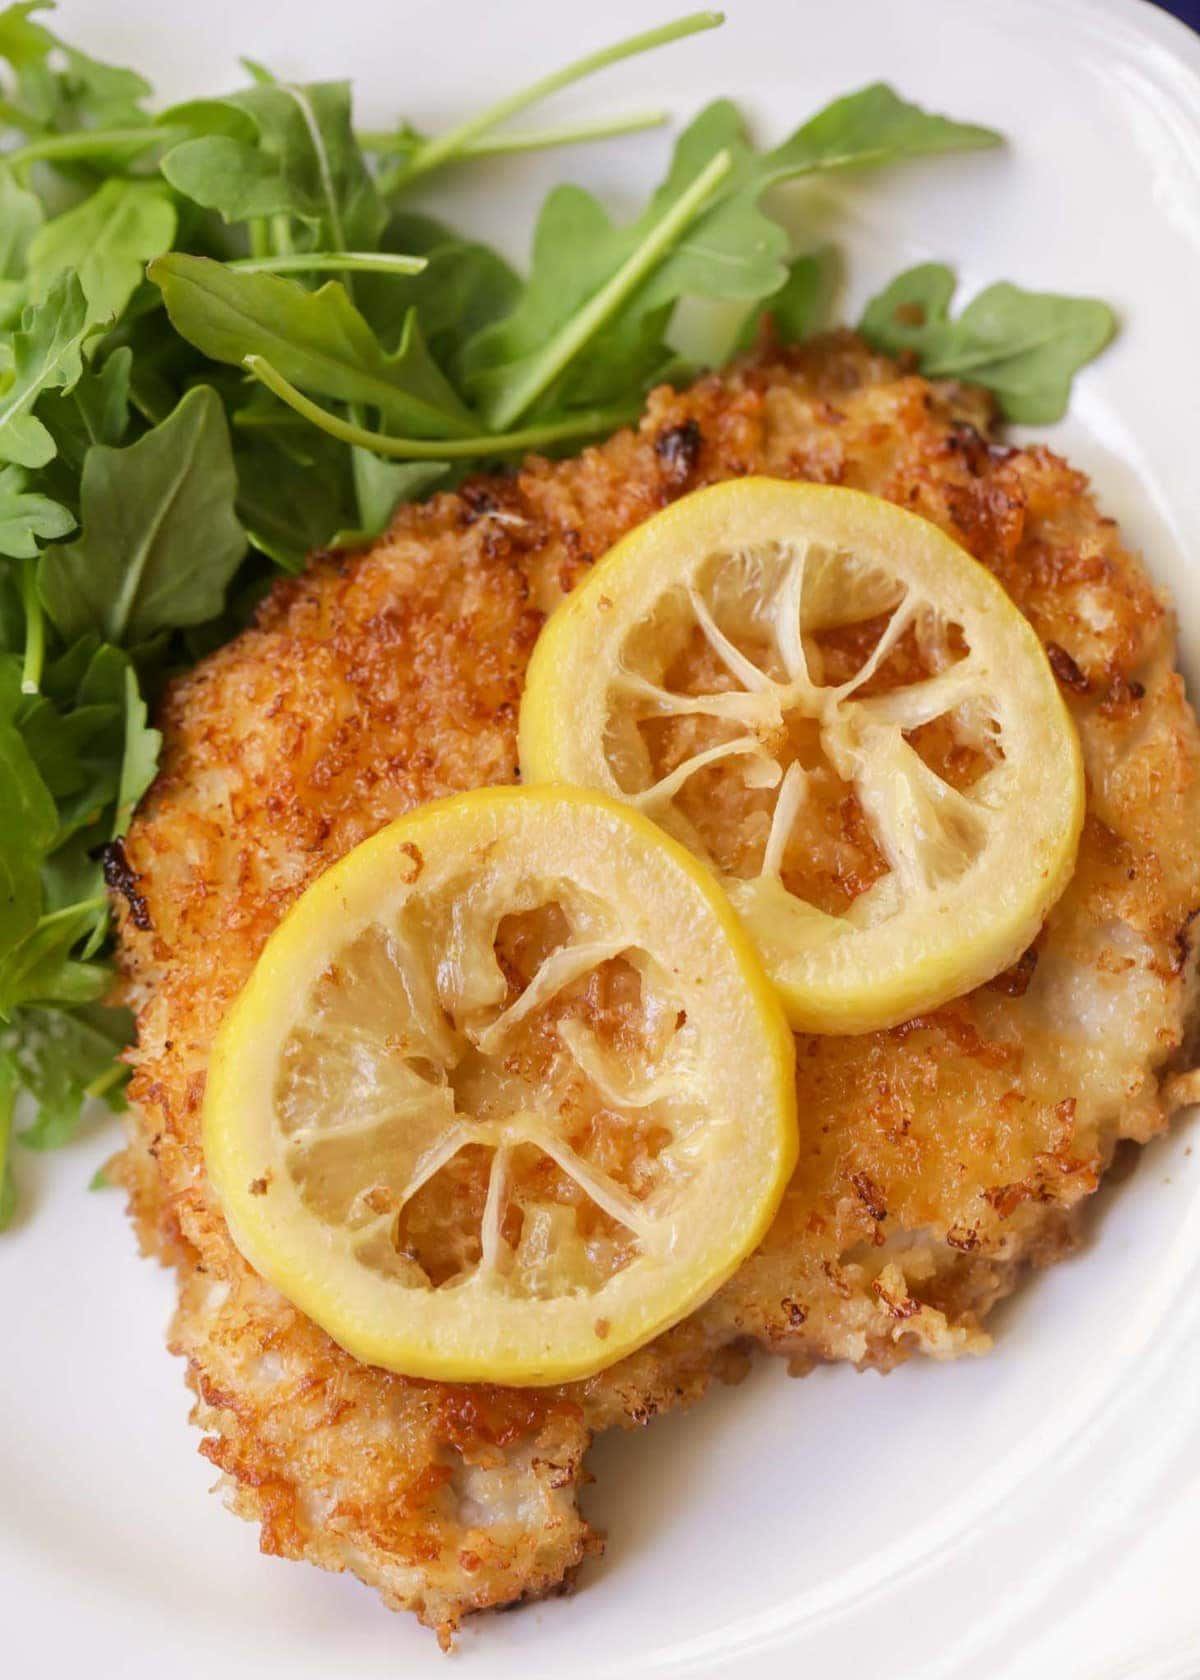 Pan fried pork chops with lemon on a plate